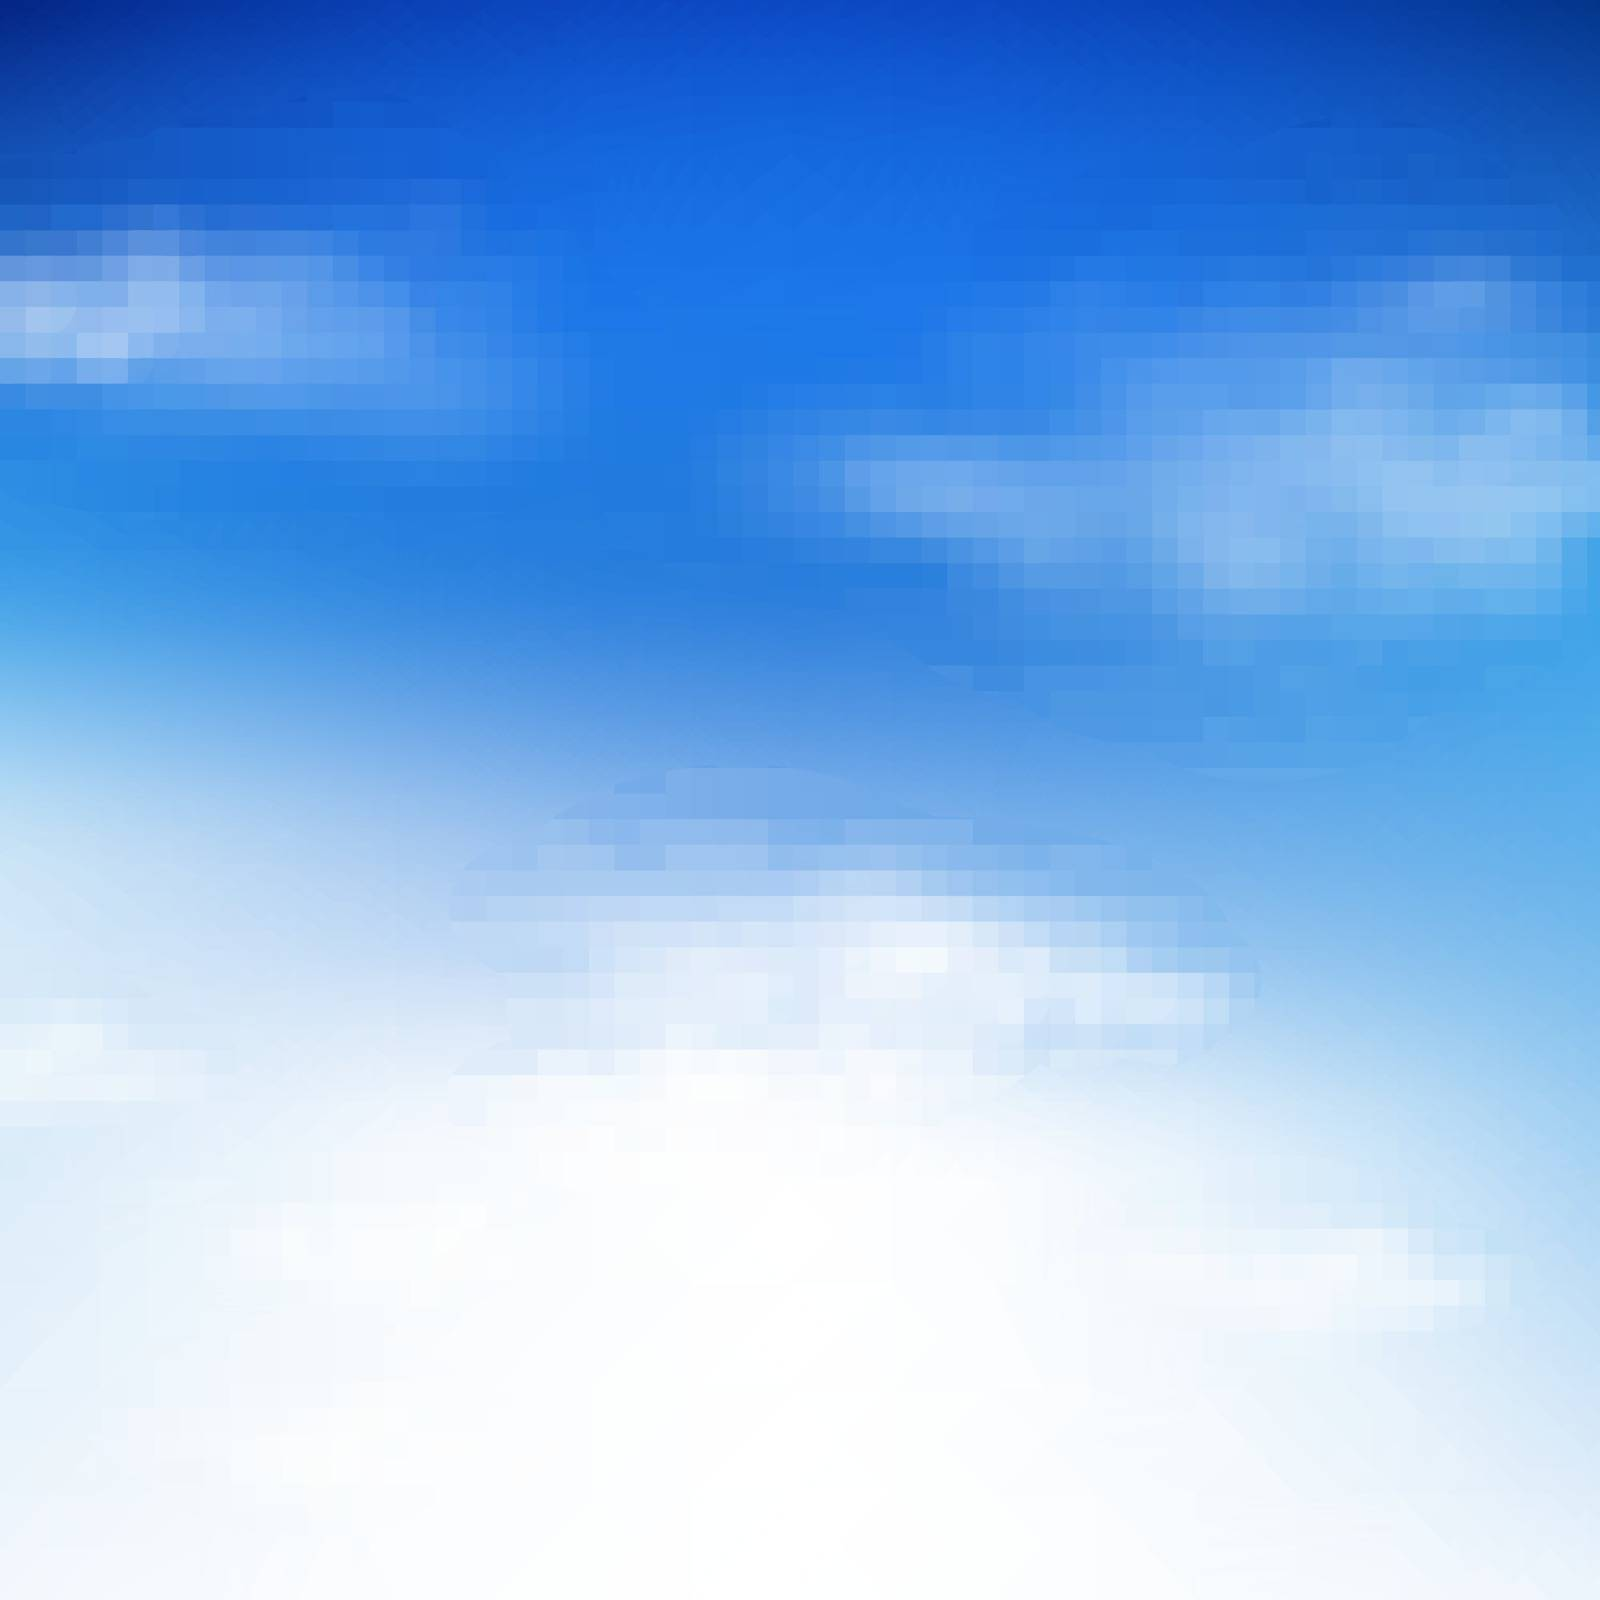 Blue Sky With Gradient Mesh, Vector Illustration